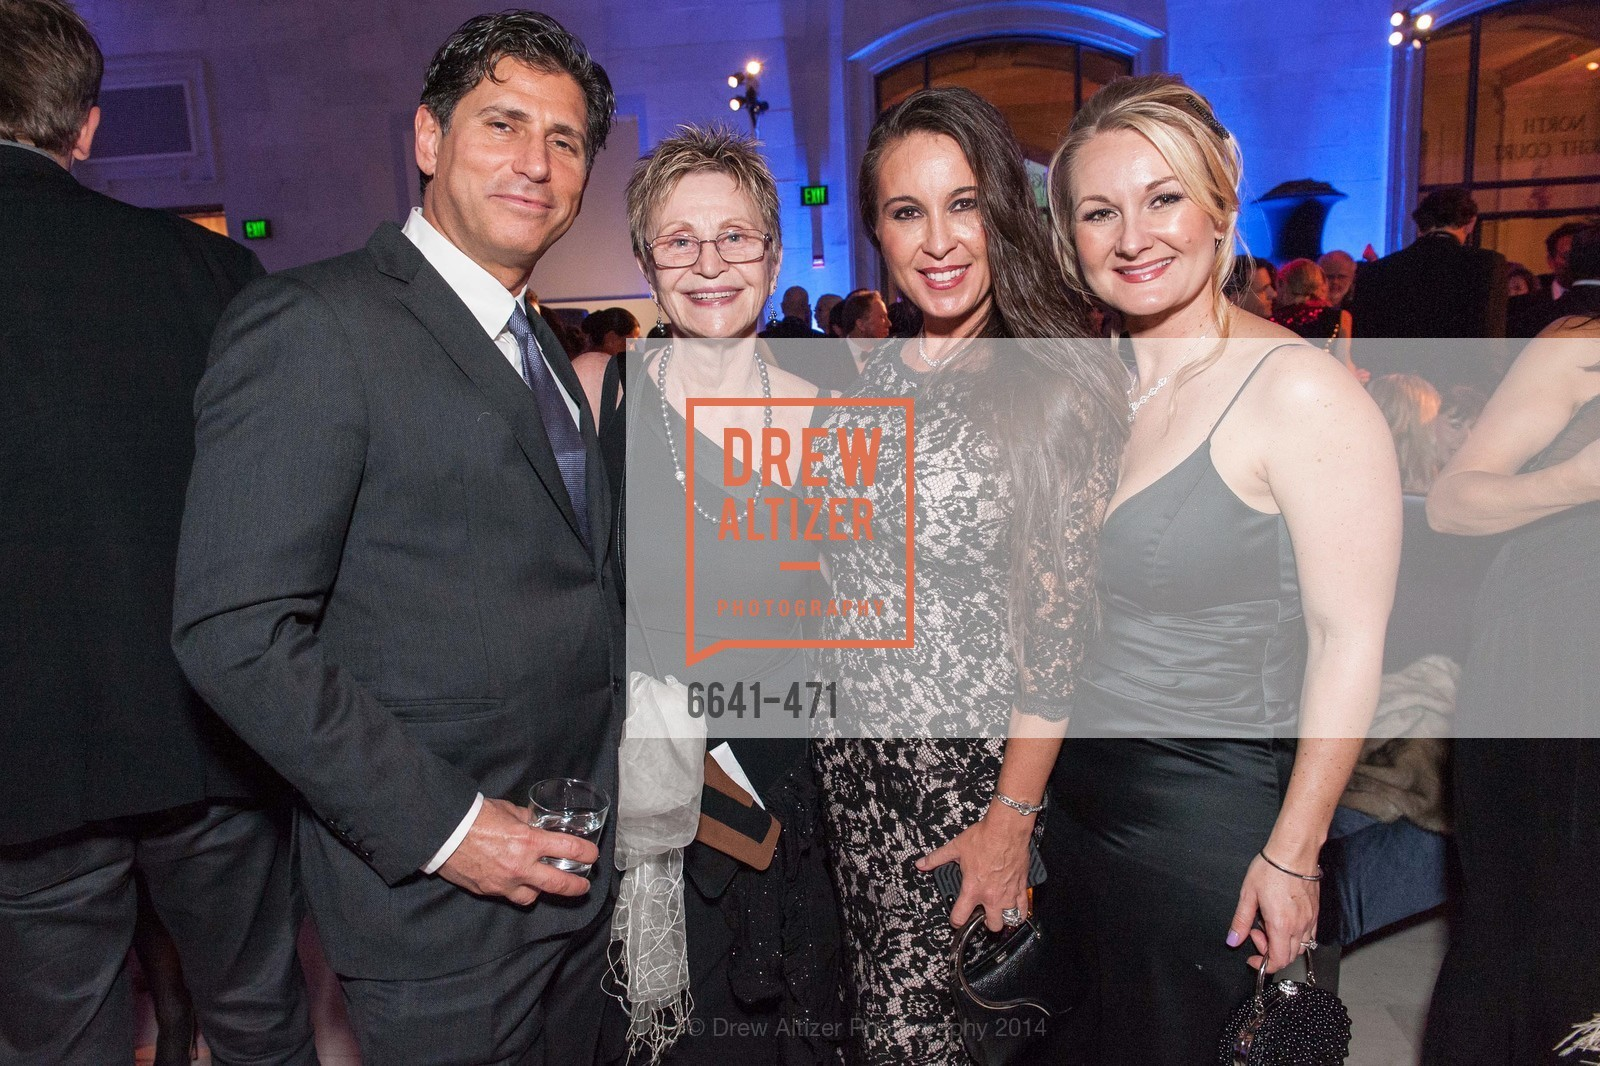 Robert Pakter, Carmen Biondi, Carla Biondi, Sherie Dietro, SAN FRANCISCO BALLET Opening Night Gala: PHENOMENAL - After Party, US. War memorial opera house, January 22nd, 2014,Drew Altizer, Drew Altizer Photography, full-service event agency, private events, San Francisco photographer, photographer California